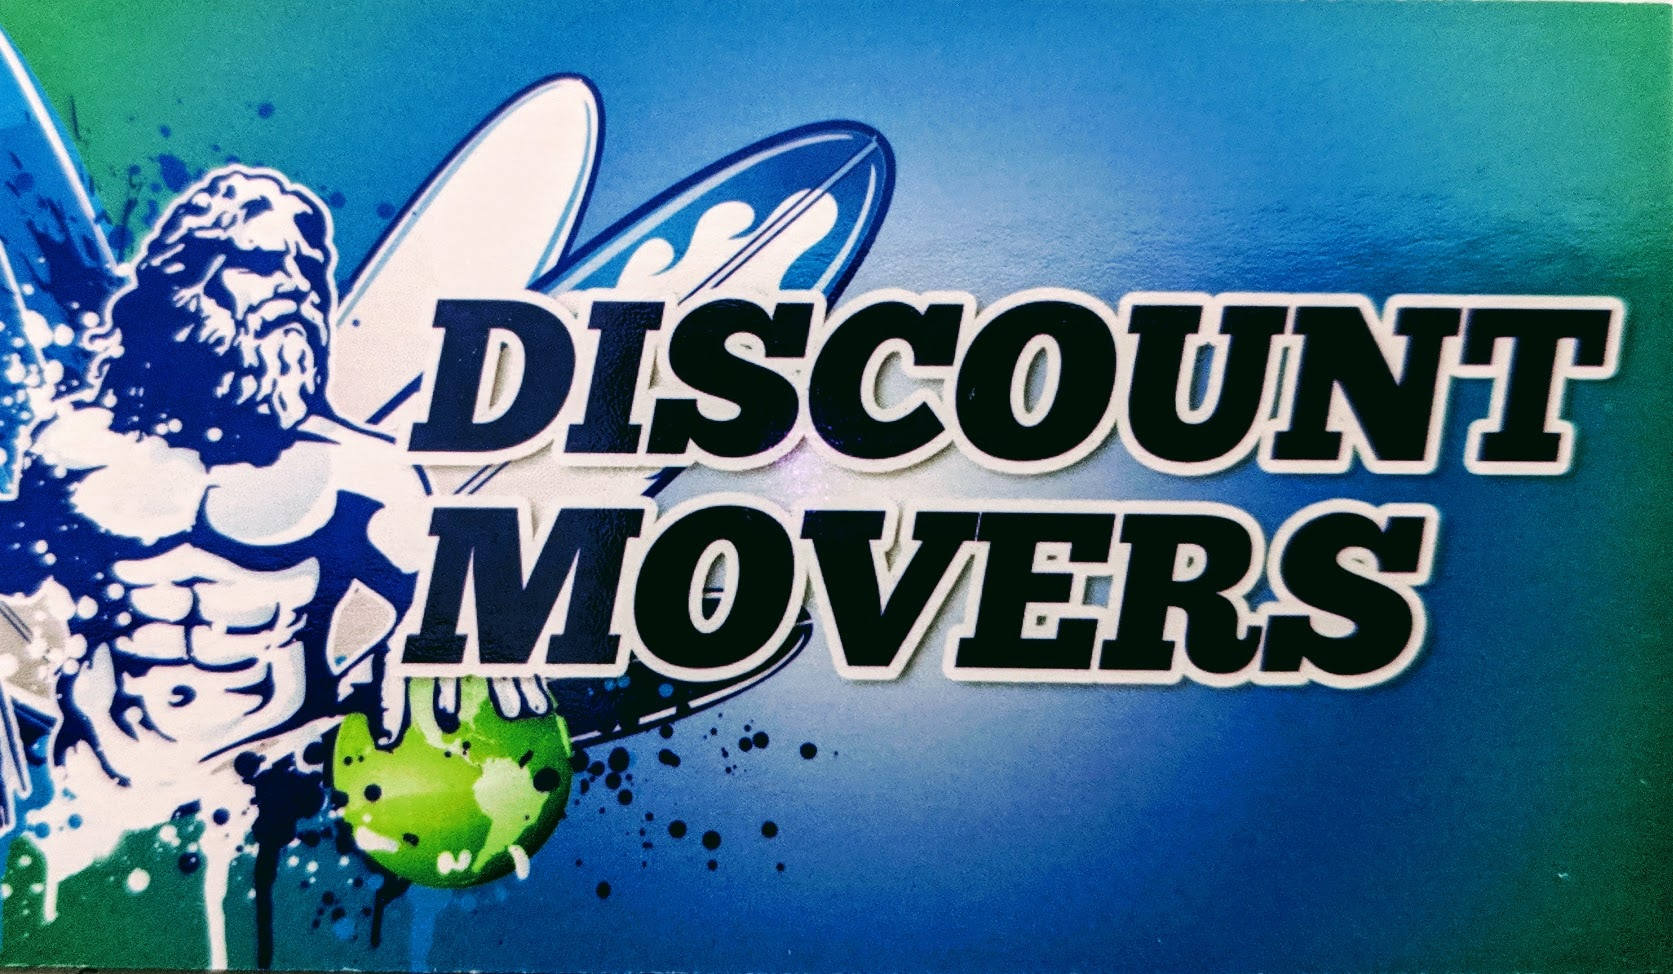 DISCOUNT MOVERS logo